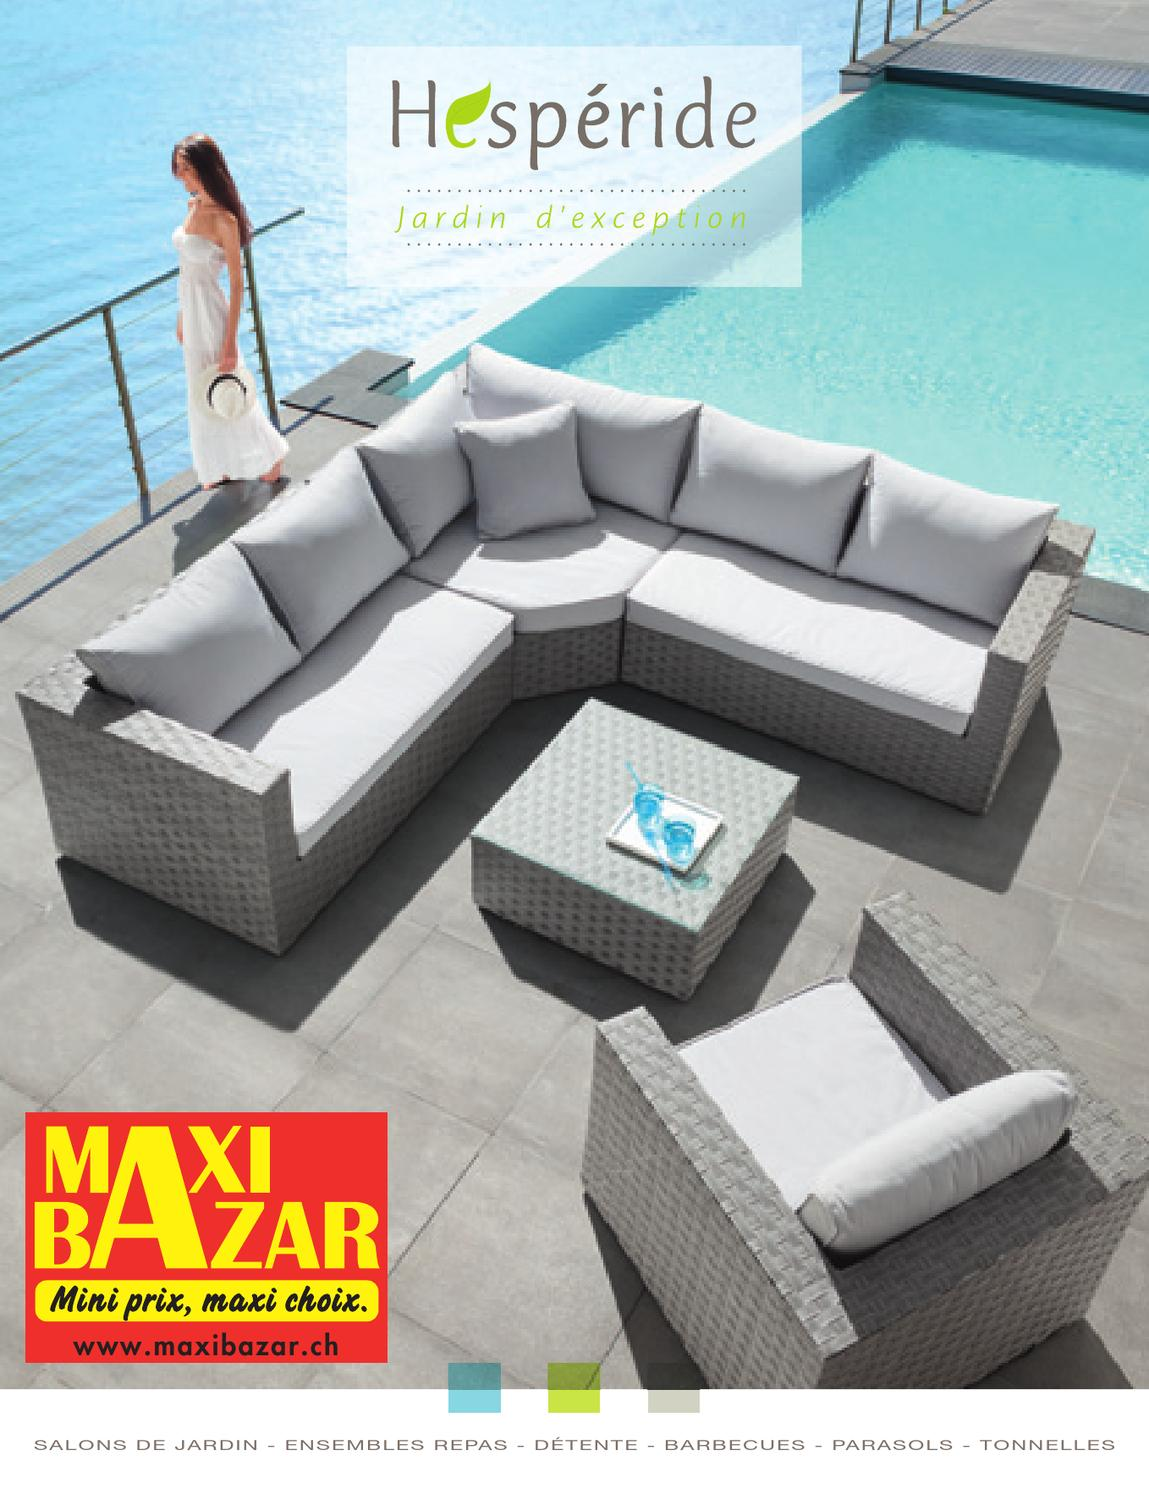 Ensemble Table Et Chaise De Jardin Nouveau Maxibazar Jardin Ch by Maxibazar issuu Of 36 Beau Ensemble Table Et Chaise De Jardin